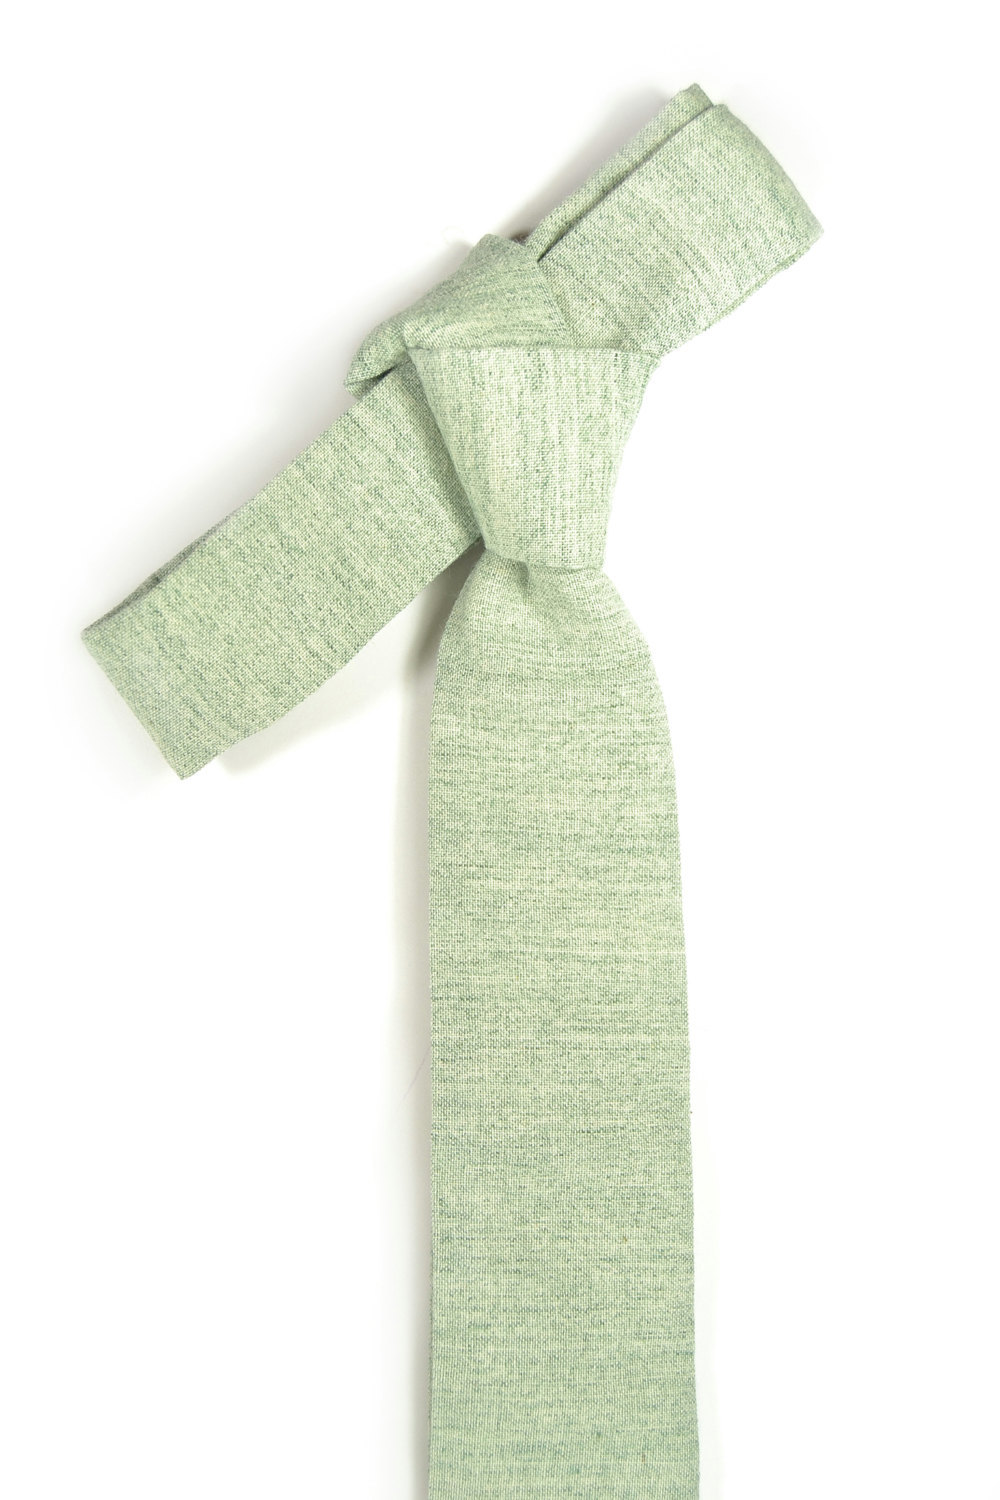 Wedding Mens Tie Skinny Necktie blush green- Laid-Back necktie- Green Japanese f image 5